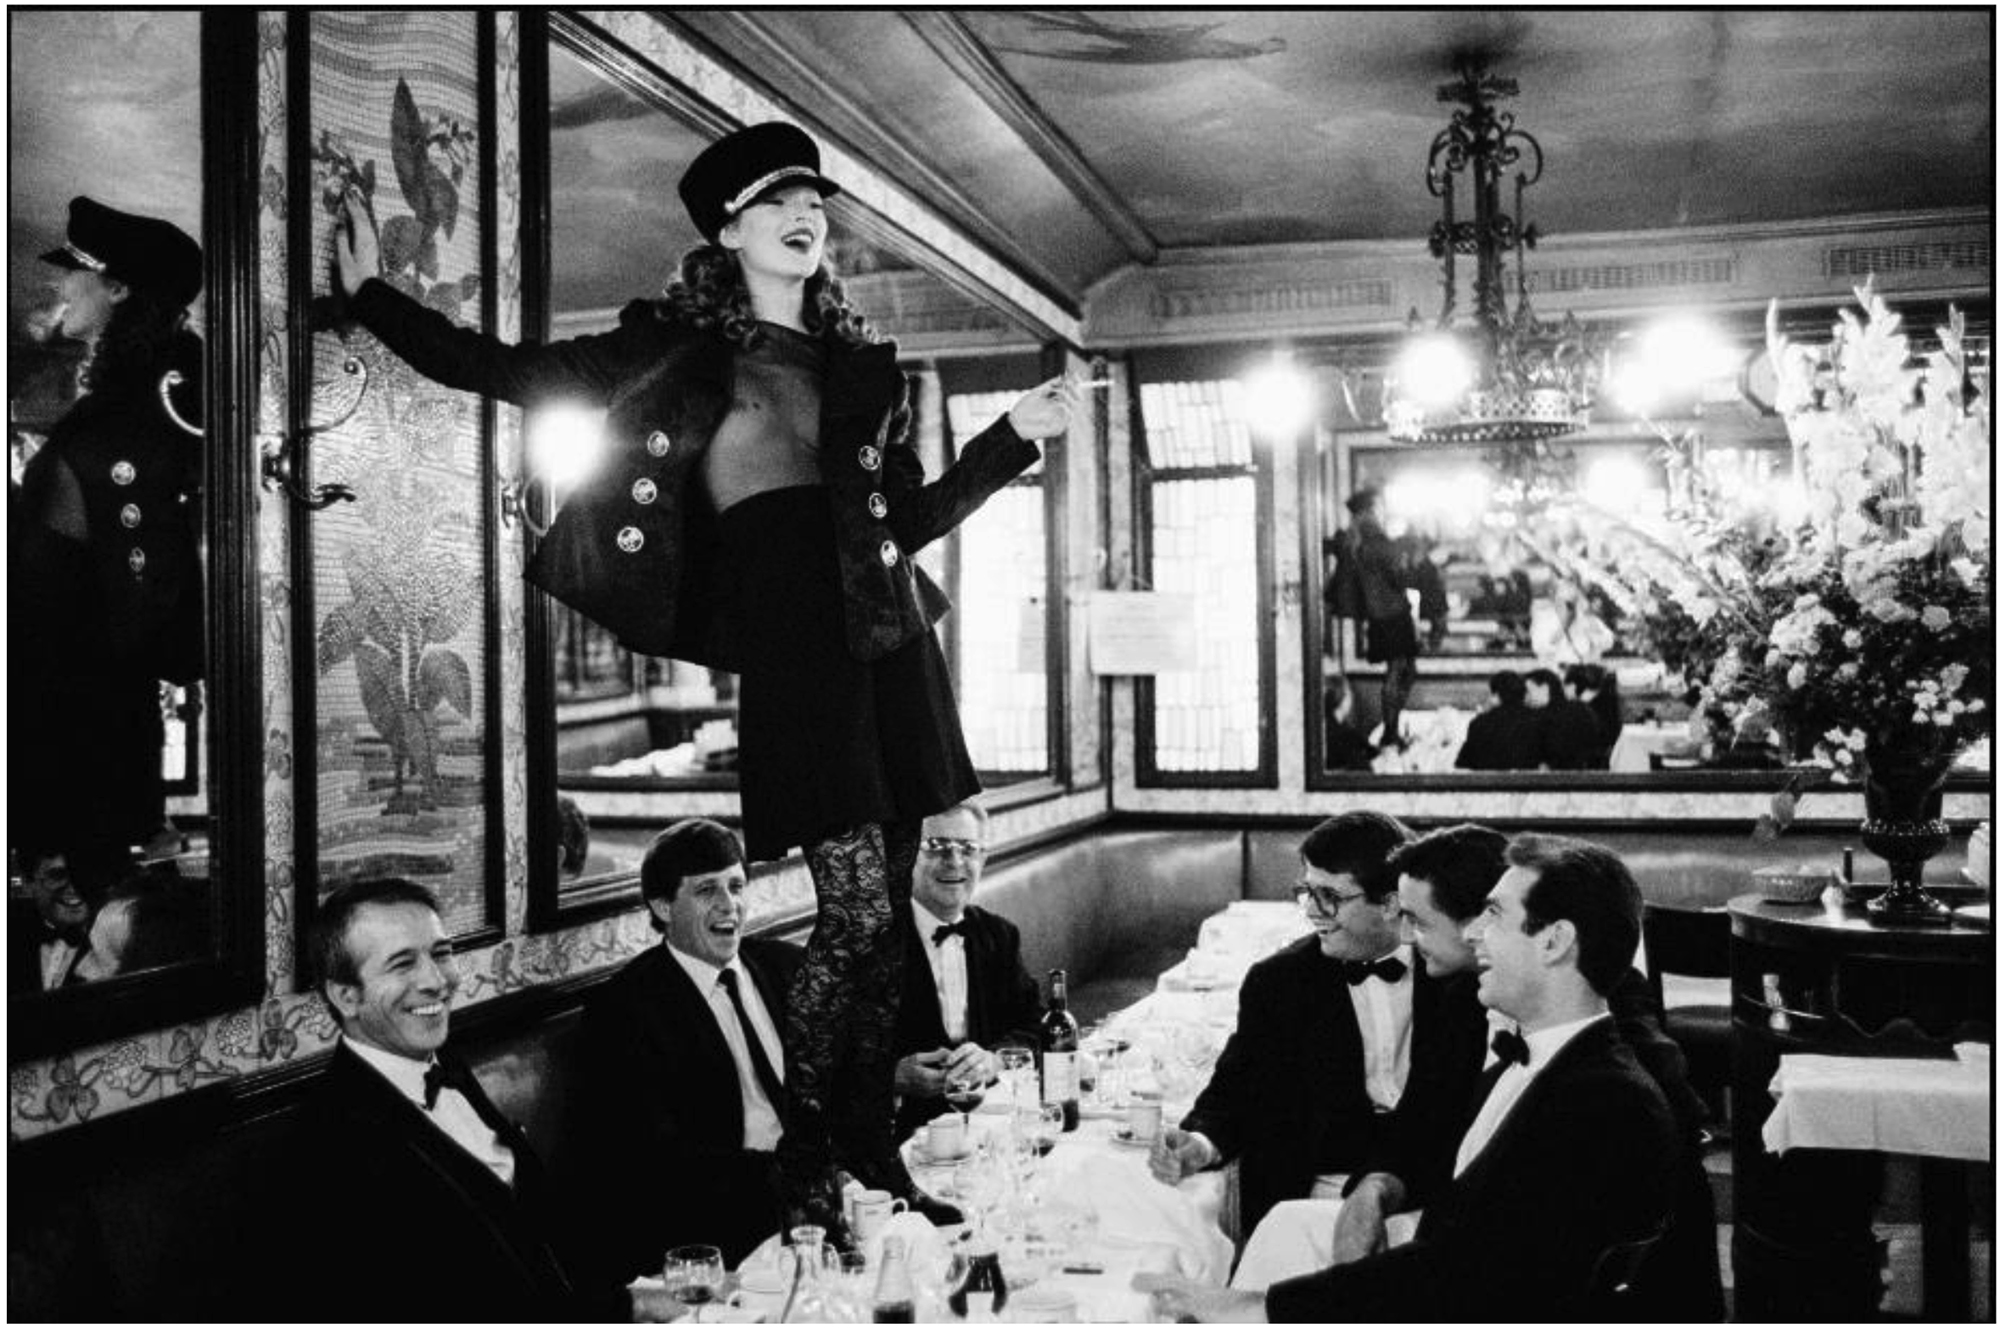 Arthur Elgort, Kate Moss at Cafe Lipp, Paris, Vogue Italia (1993). Image courtesy of the artist and Atlas Gallery